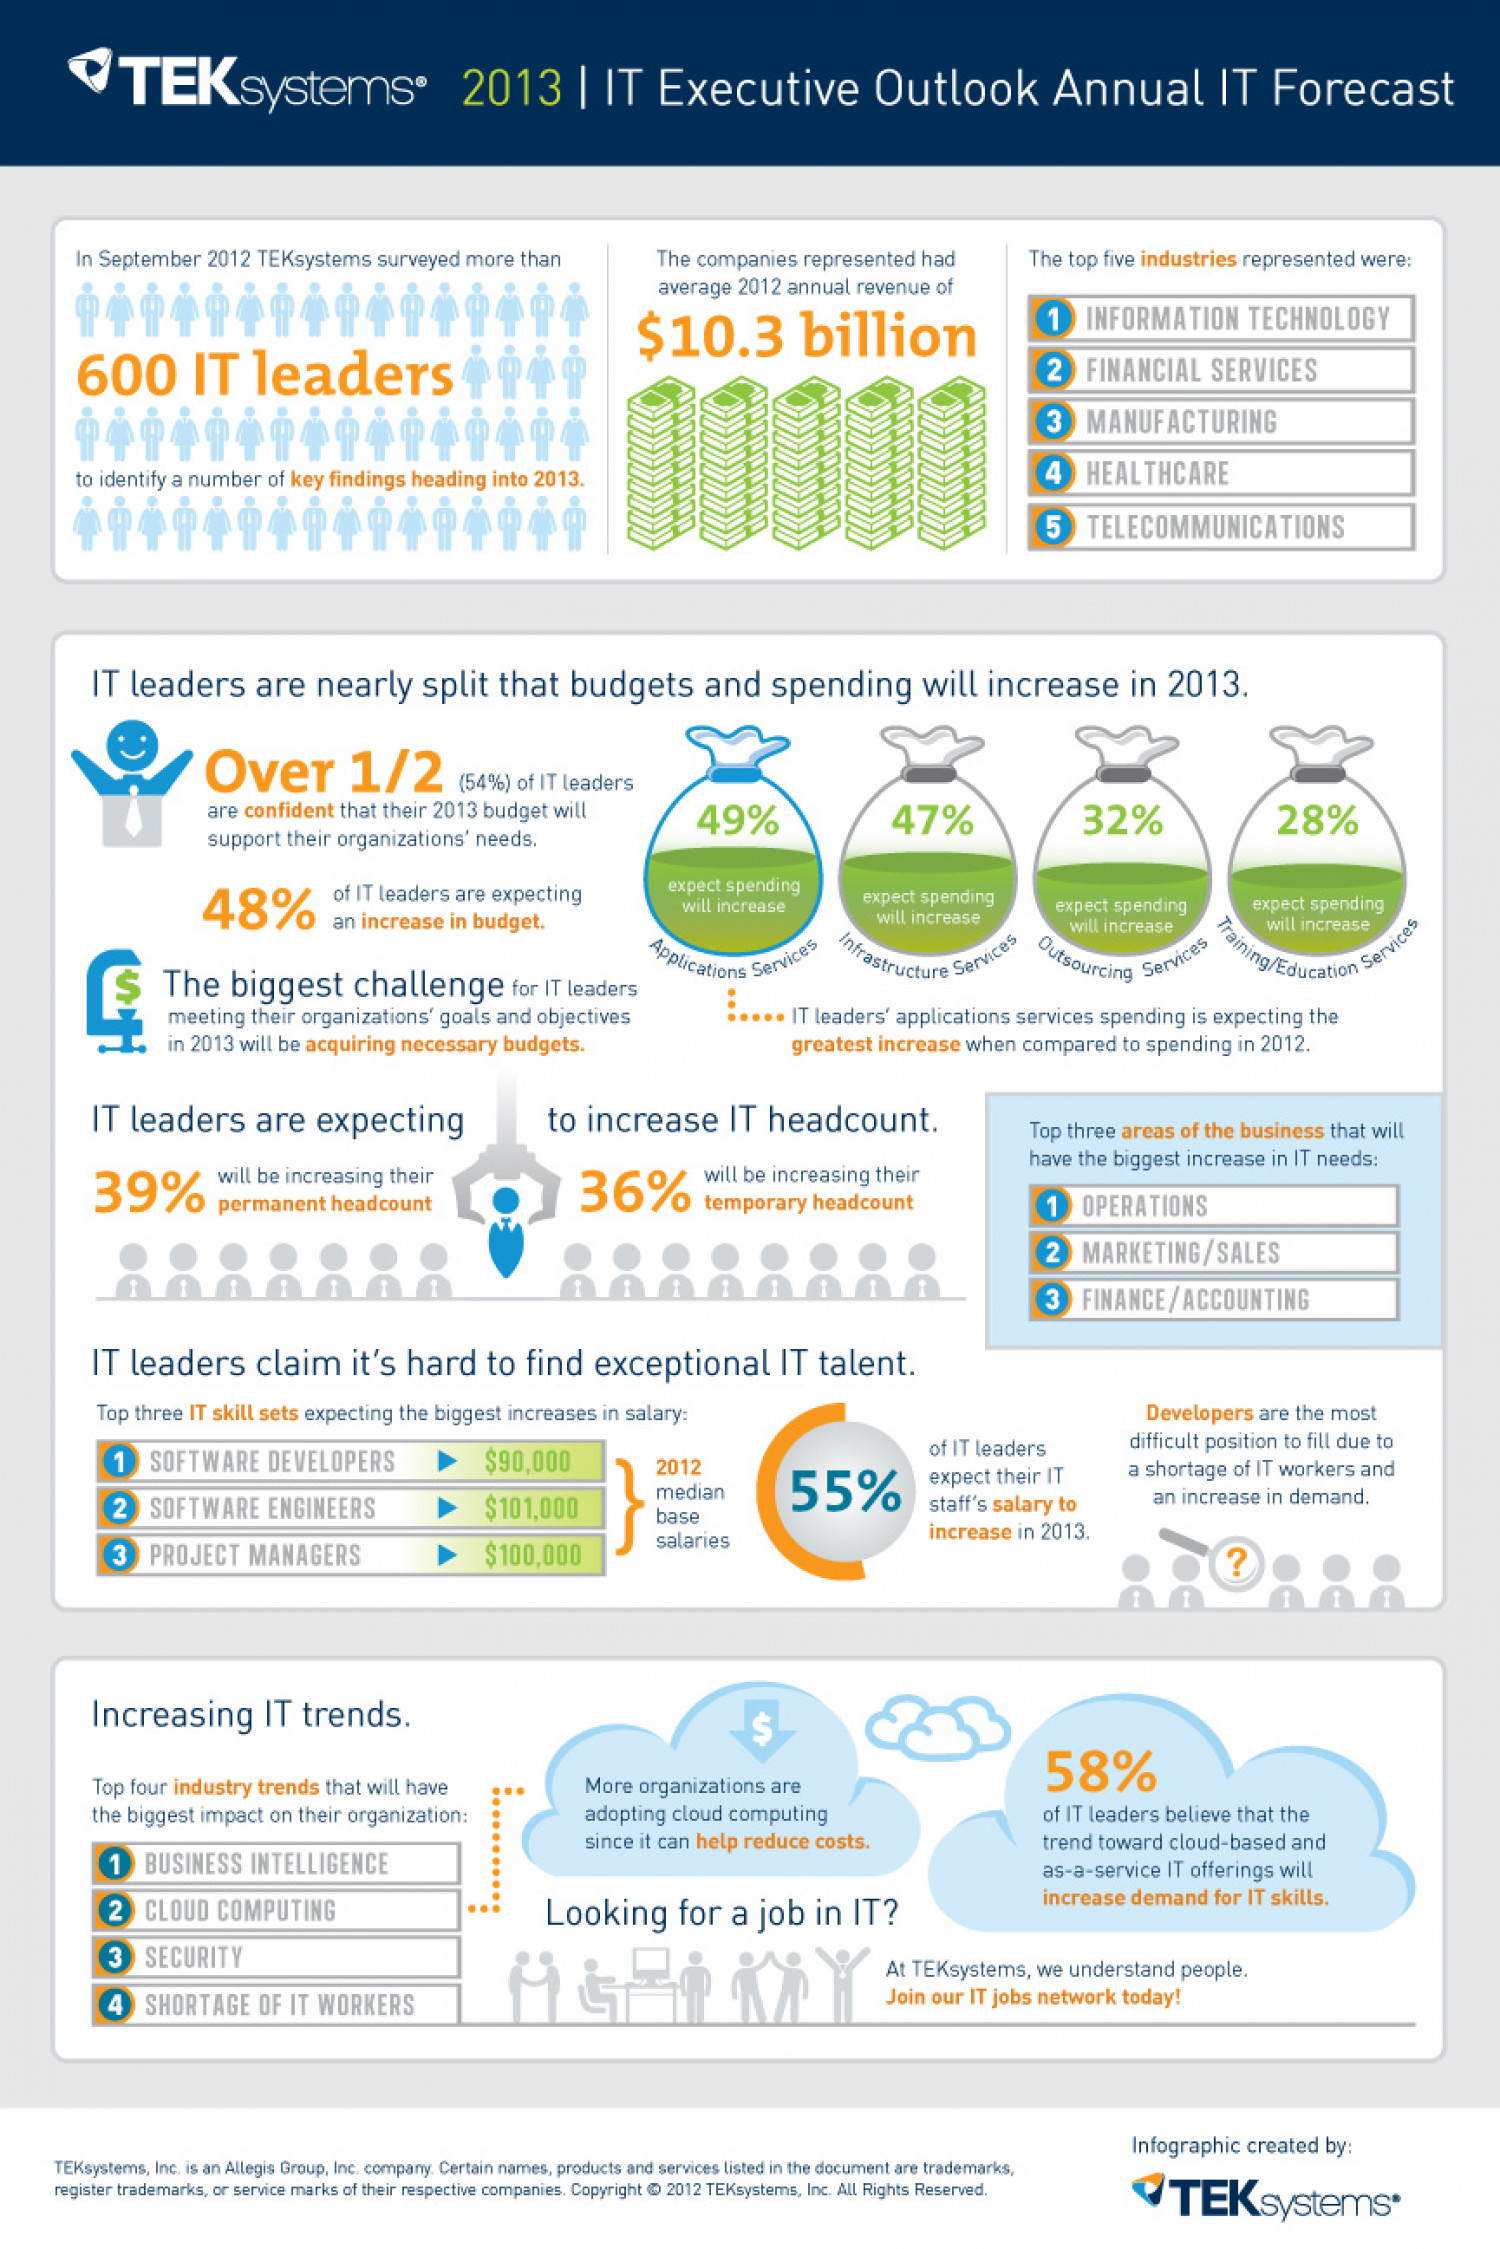 IT Executive Outlook Annual IT Forecast Infographic